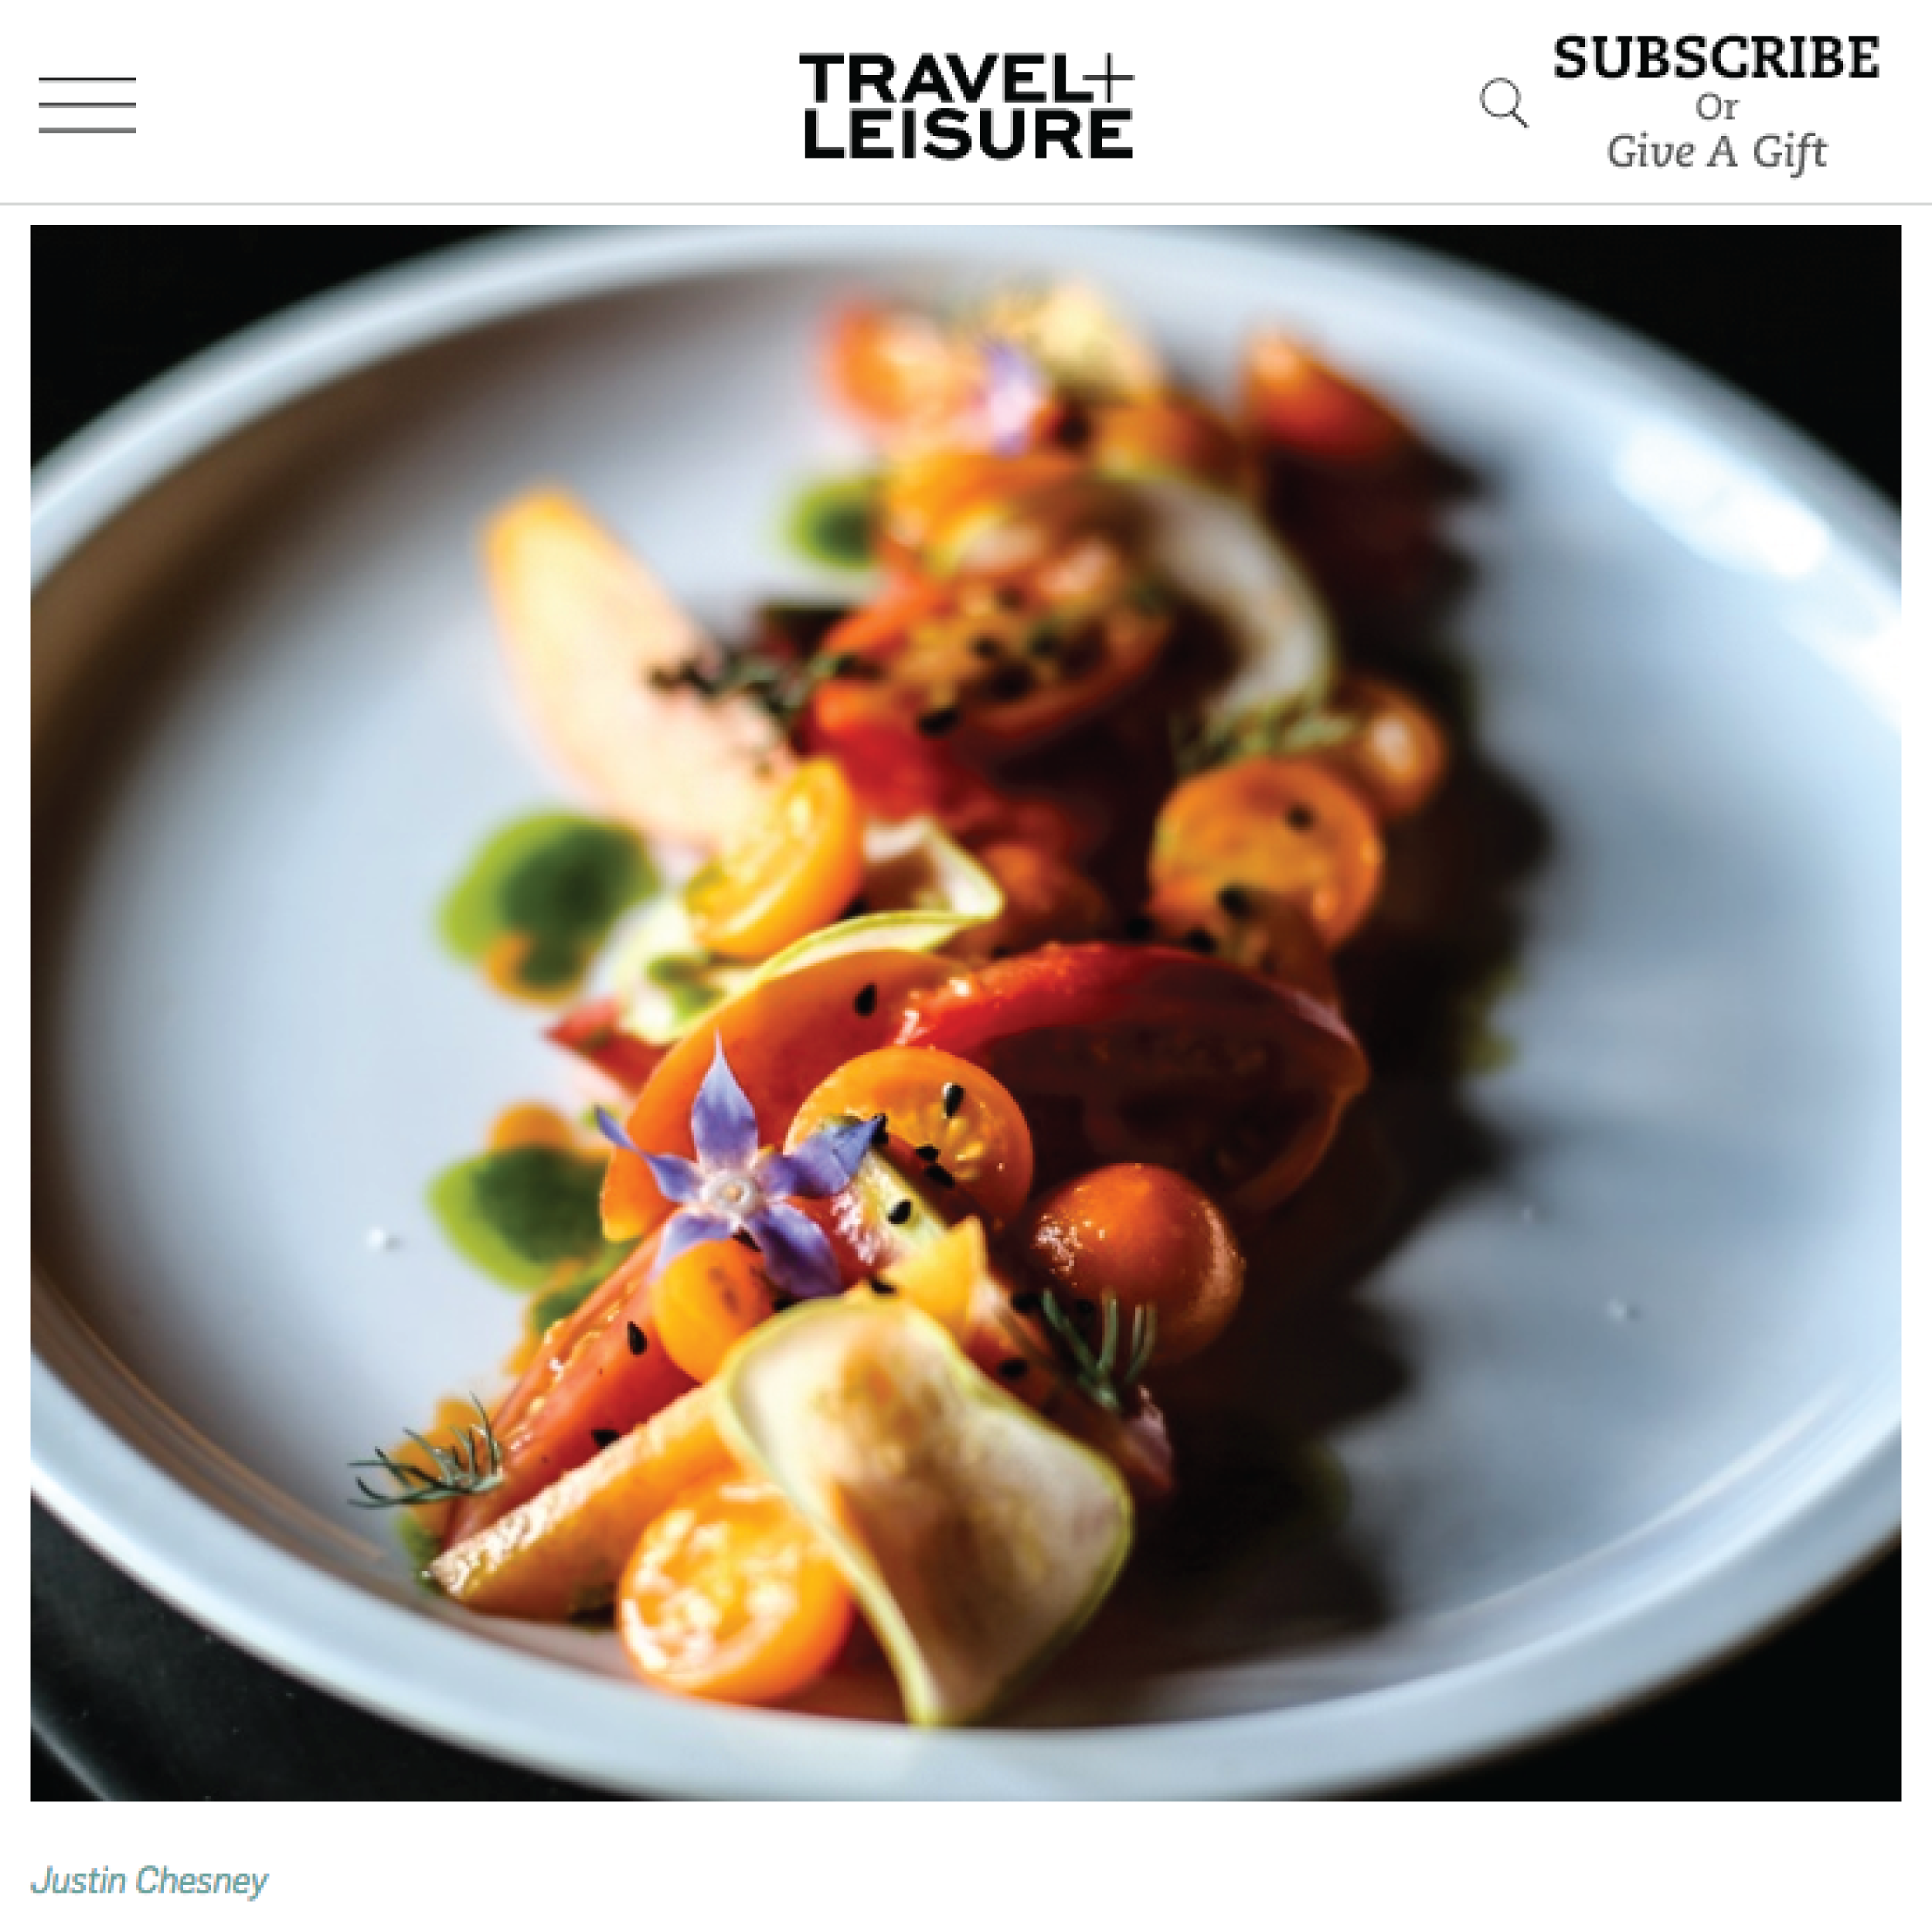 Travel+Leisure 7-31-2015-01-01.png